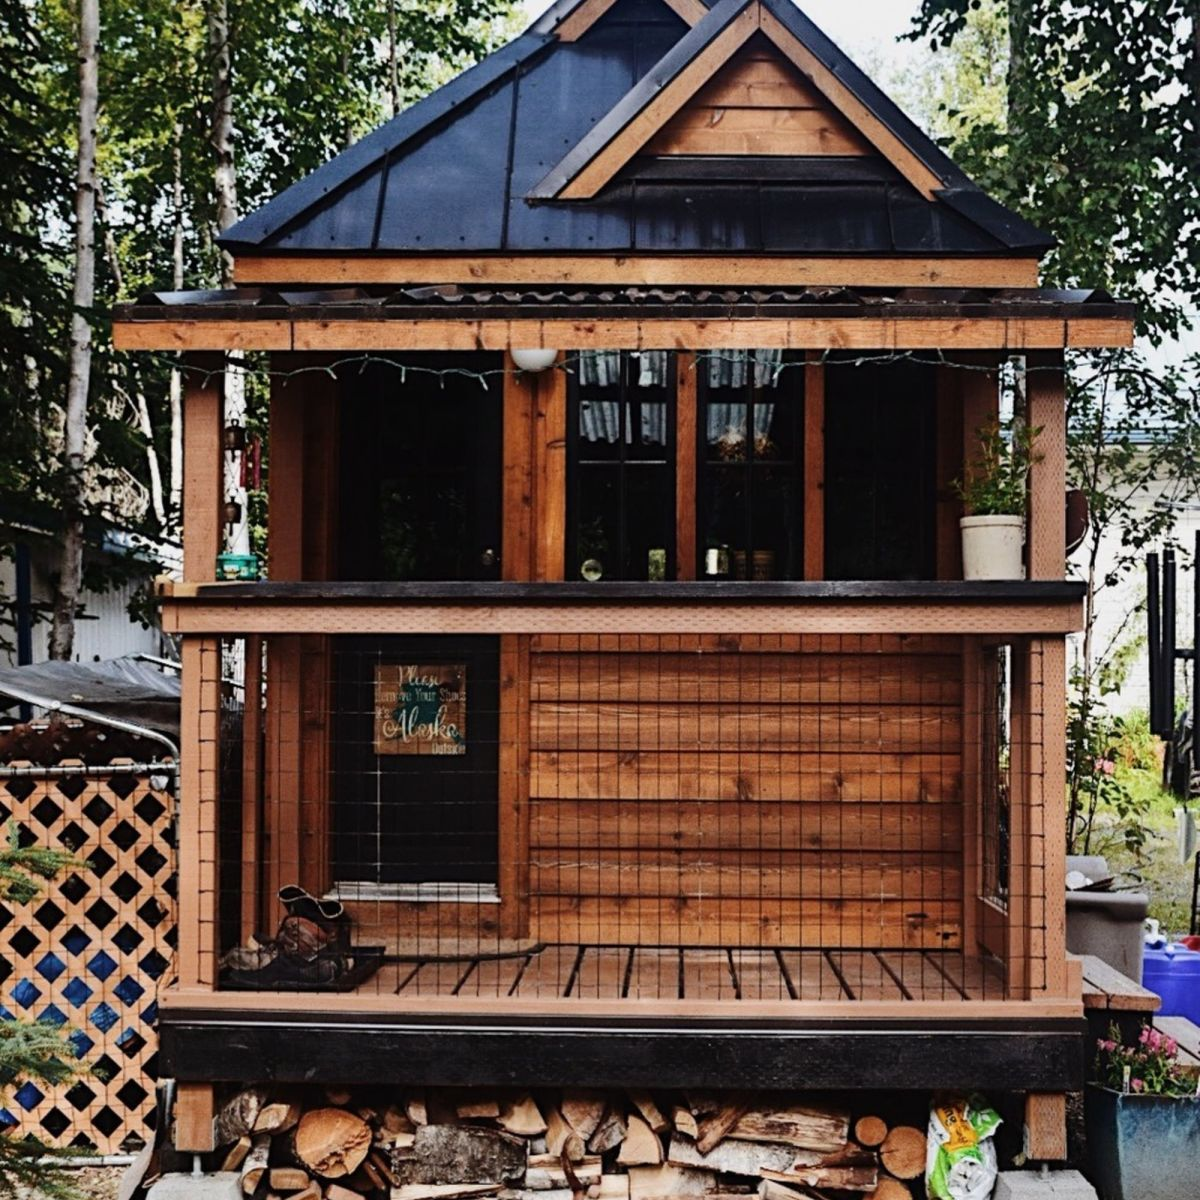 House Guide For Rent: Tiny Houses For Sale In Alaska